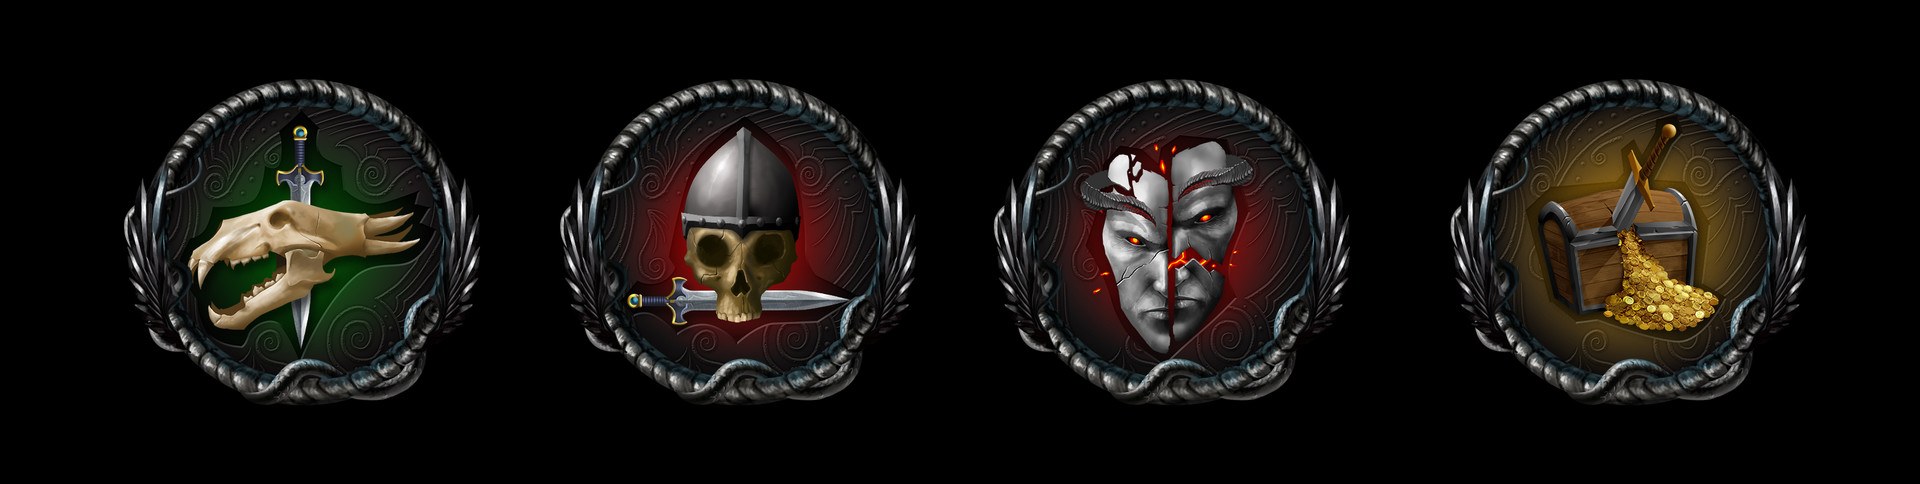 Konstantin gdalevich event icons all2